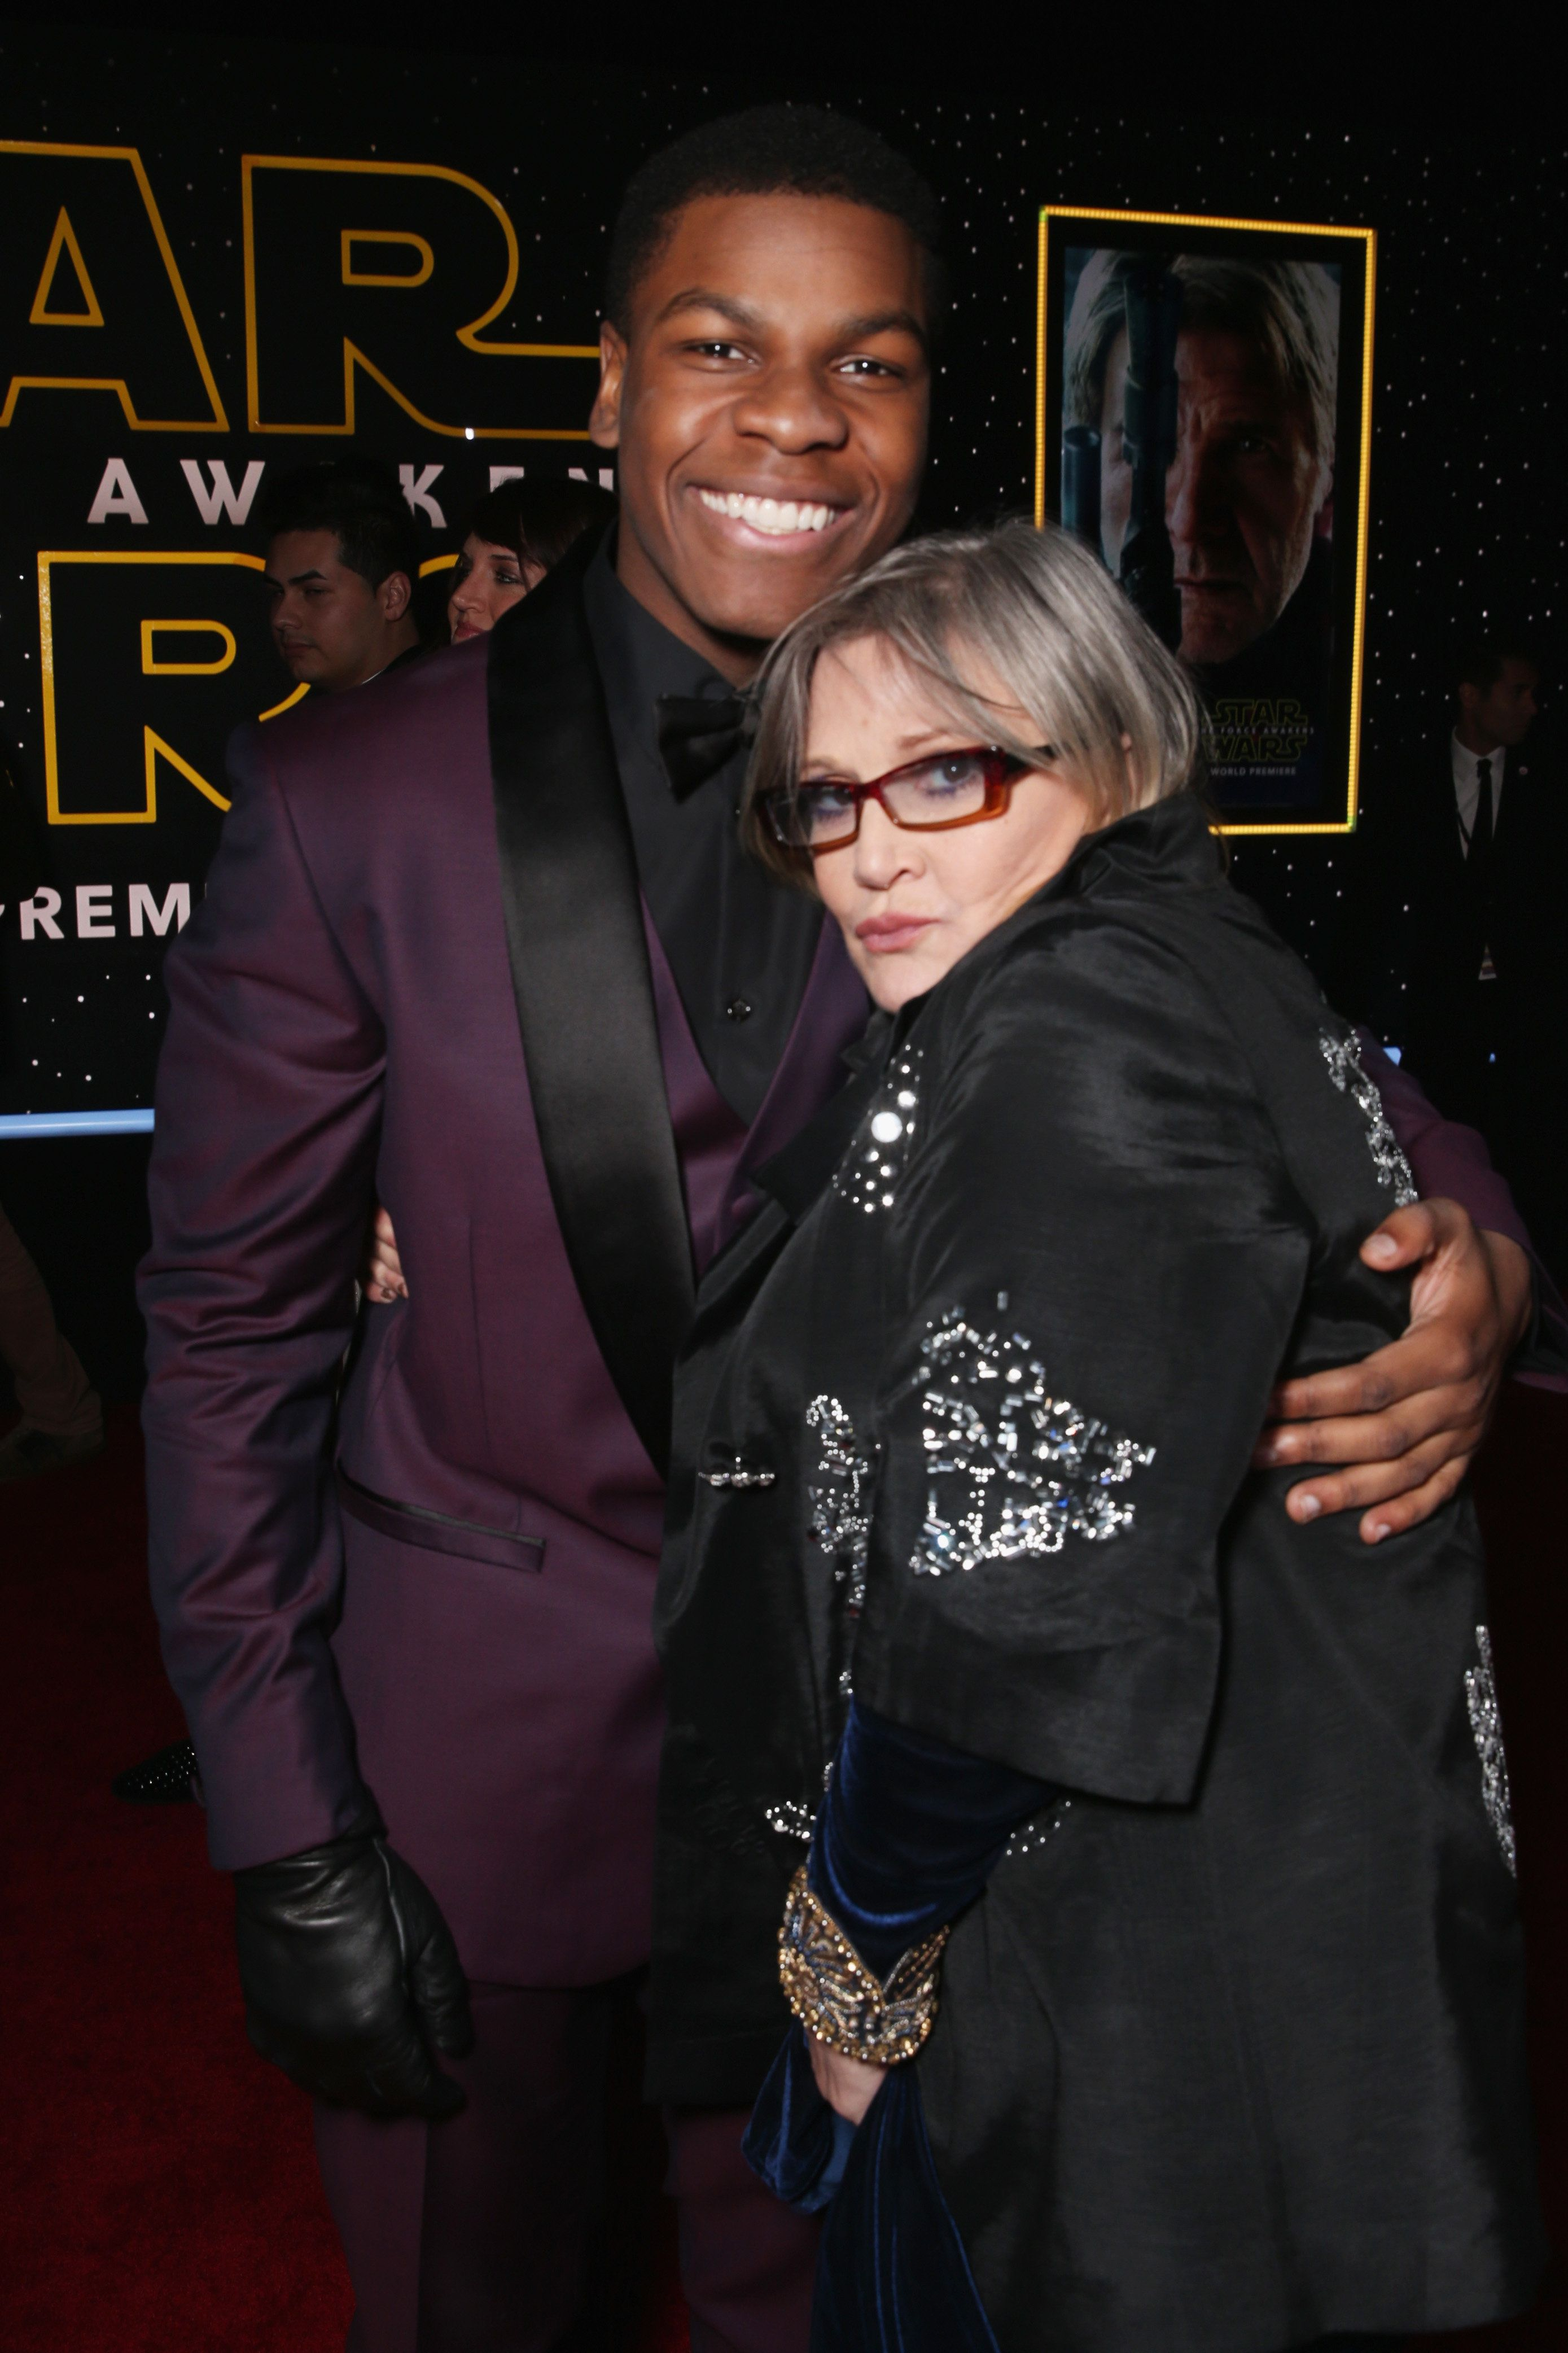 John and Carrie at the 2015 'Star Wars: The Force Awakens'